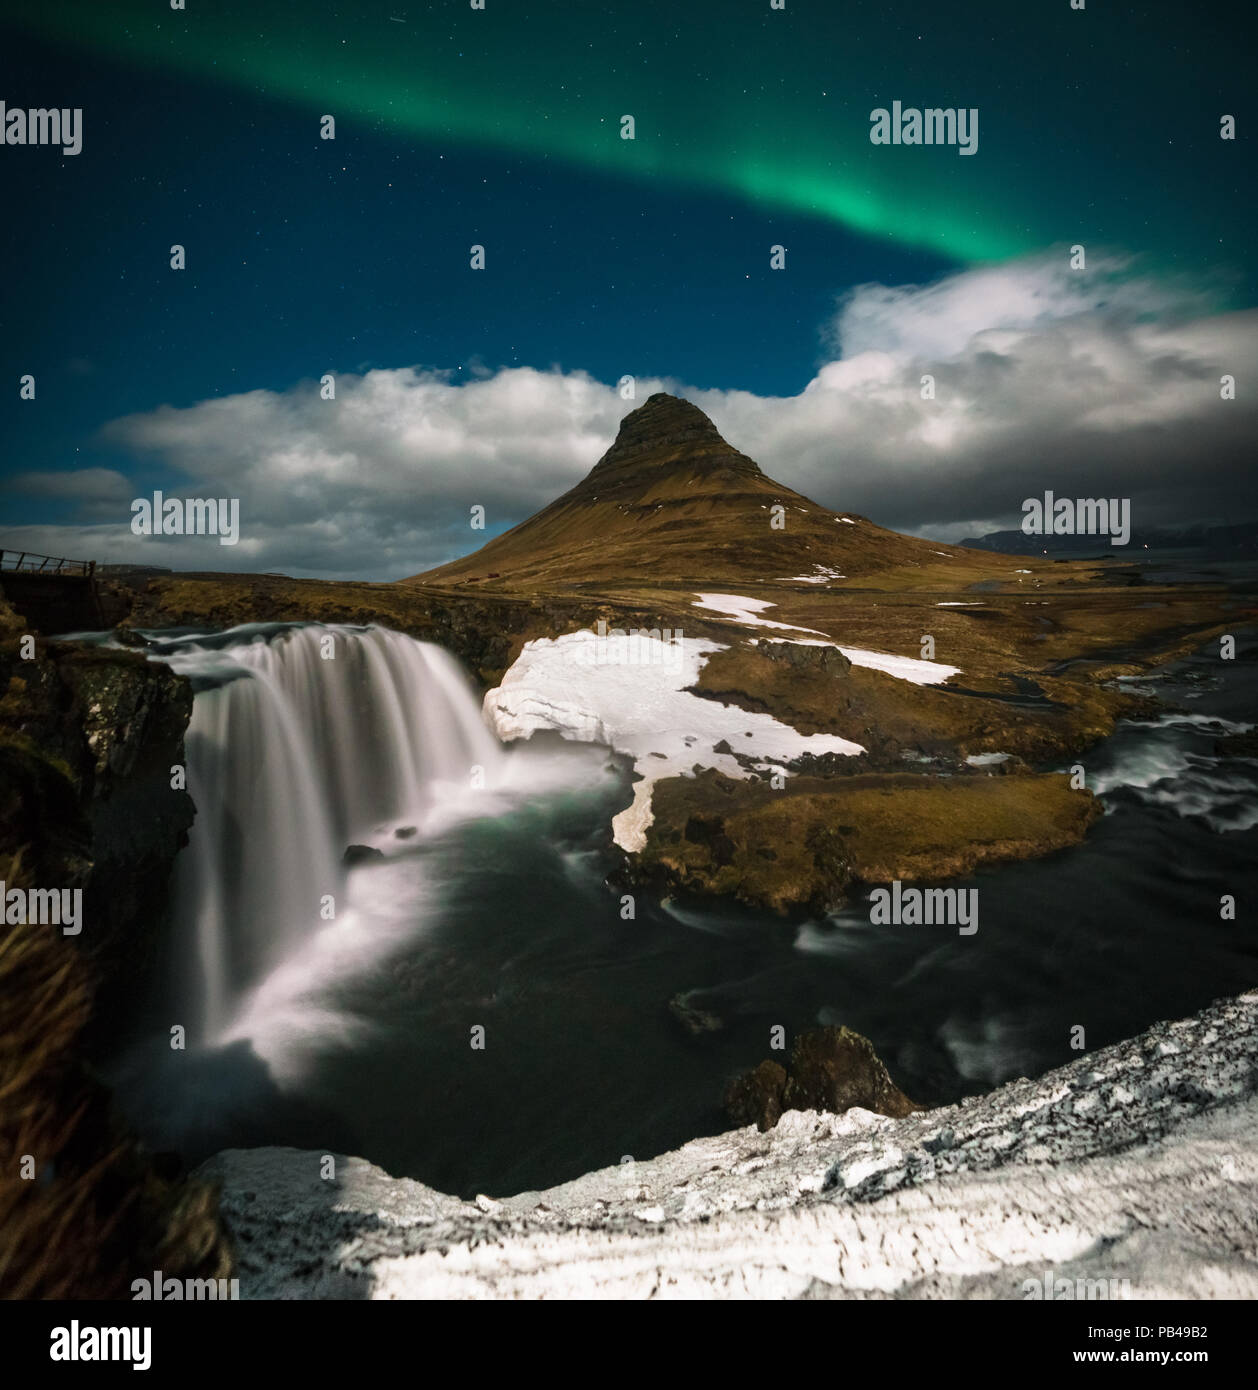 Northern lights aurora borealis appear over Mount Kirkjufell in Iceland. - Stock Image